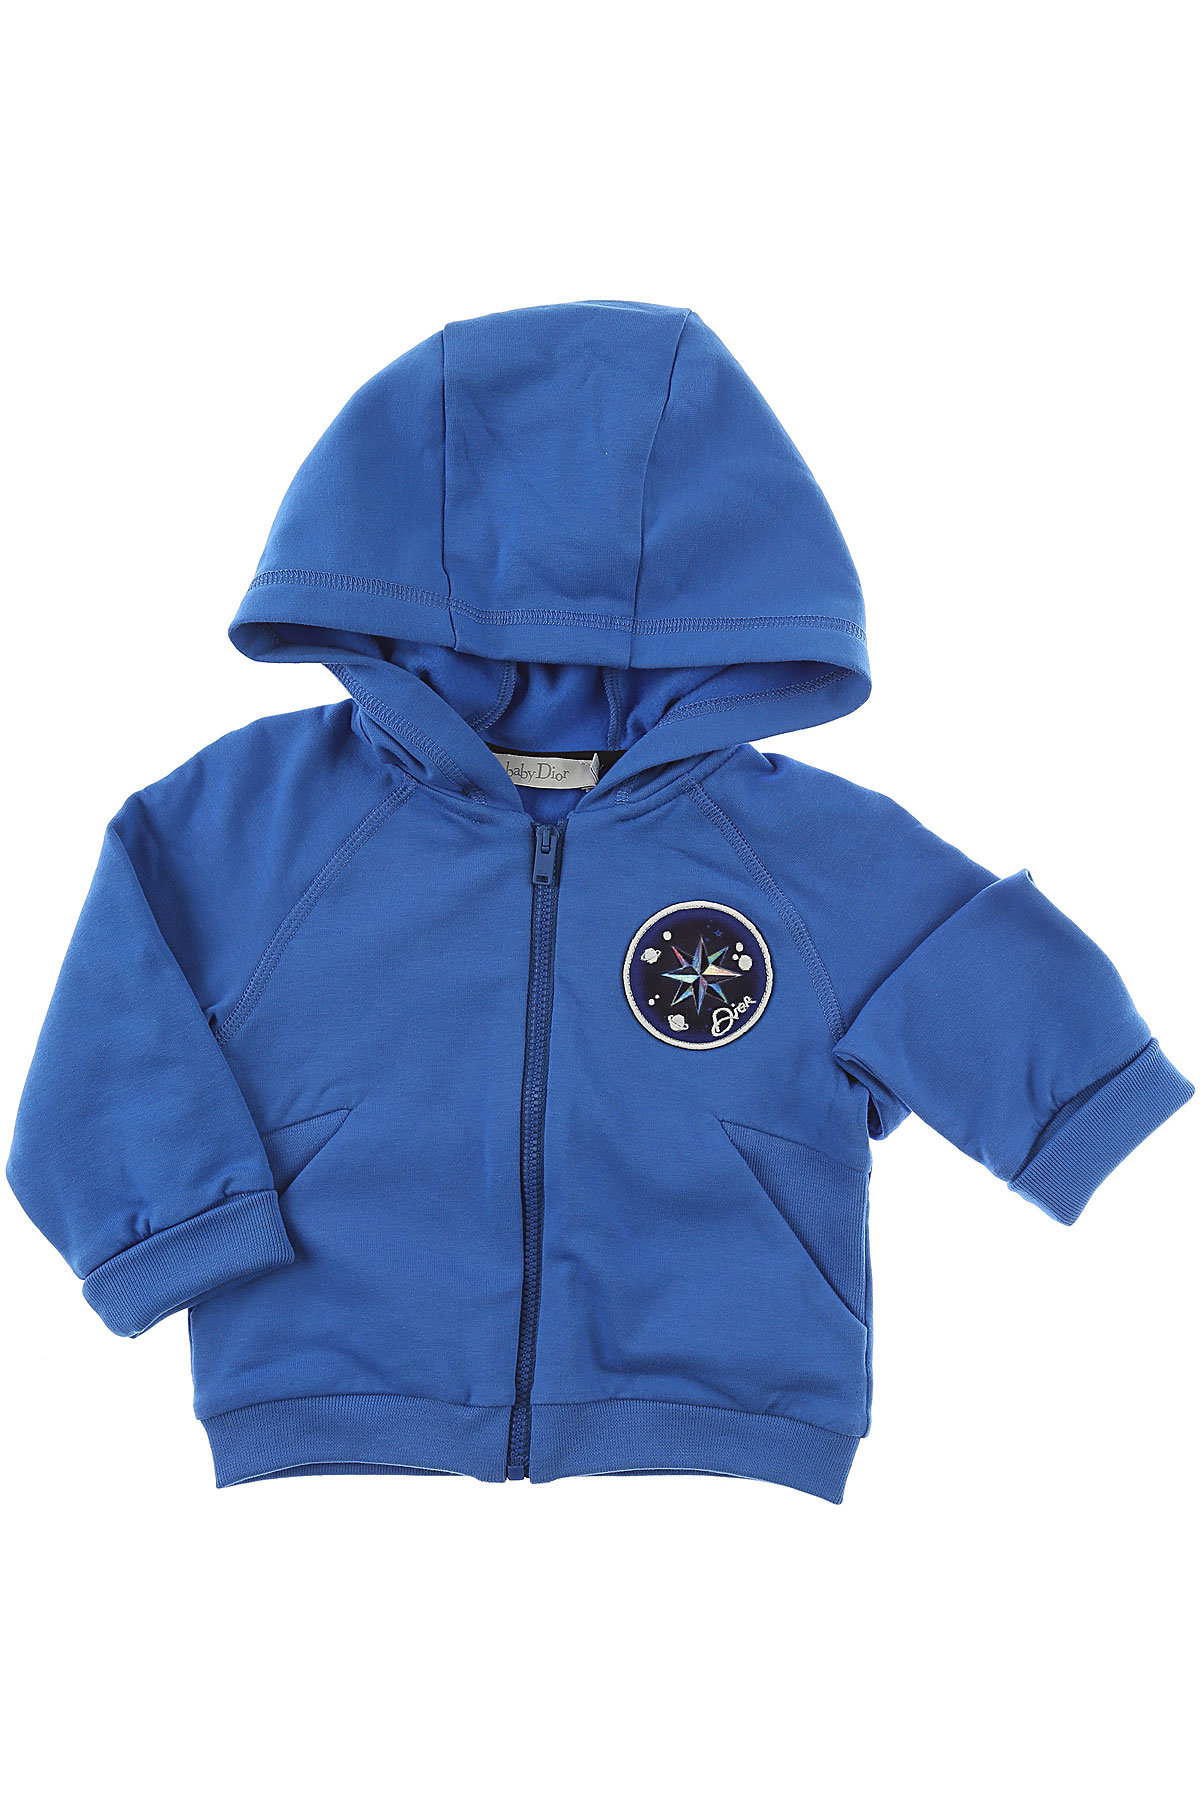 Image of Baby Dior Baby Sweatshirts & Hoodies for Boys, Blue, Cotton, 2017, 12M 18M 2Y 3Y 6M 9M